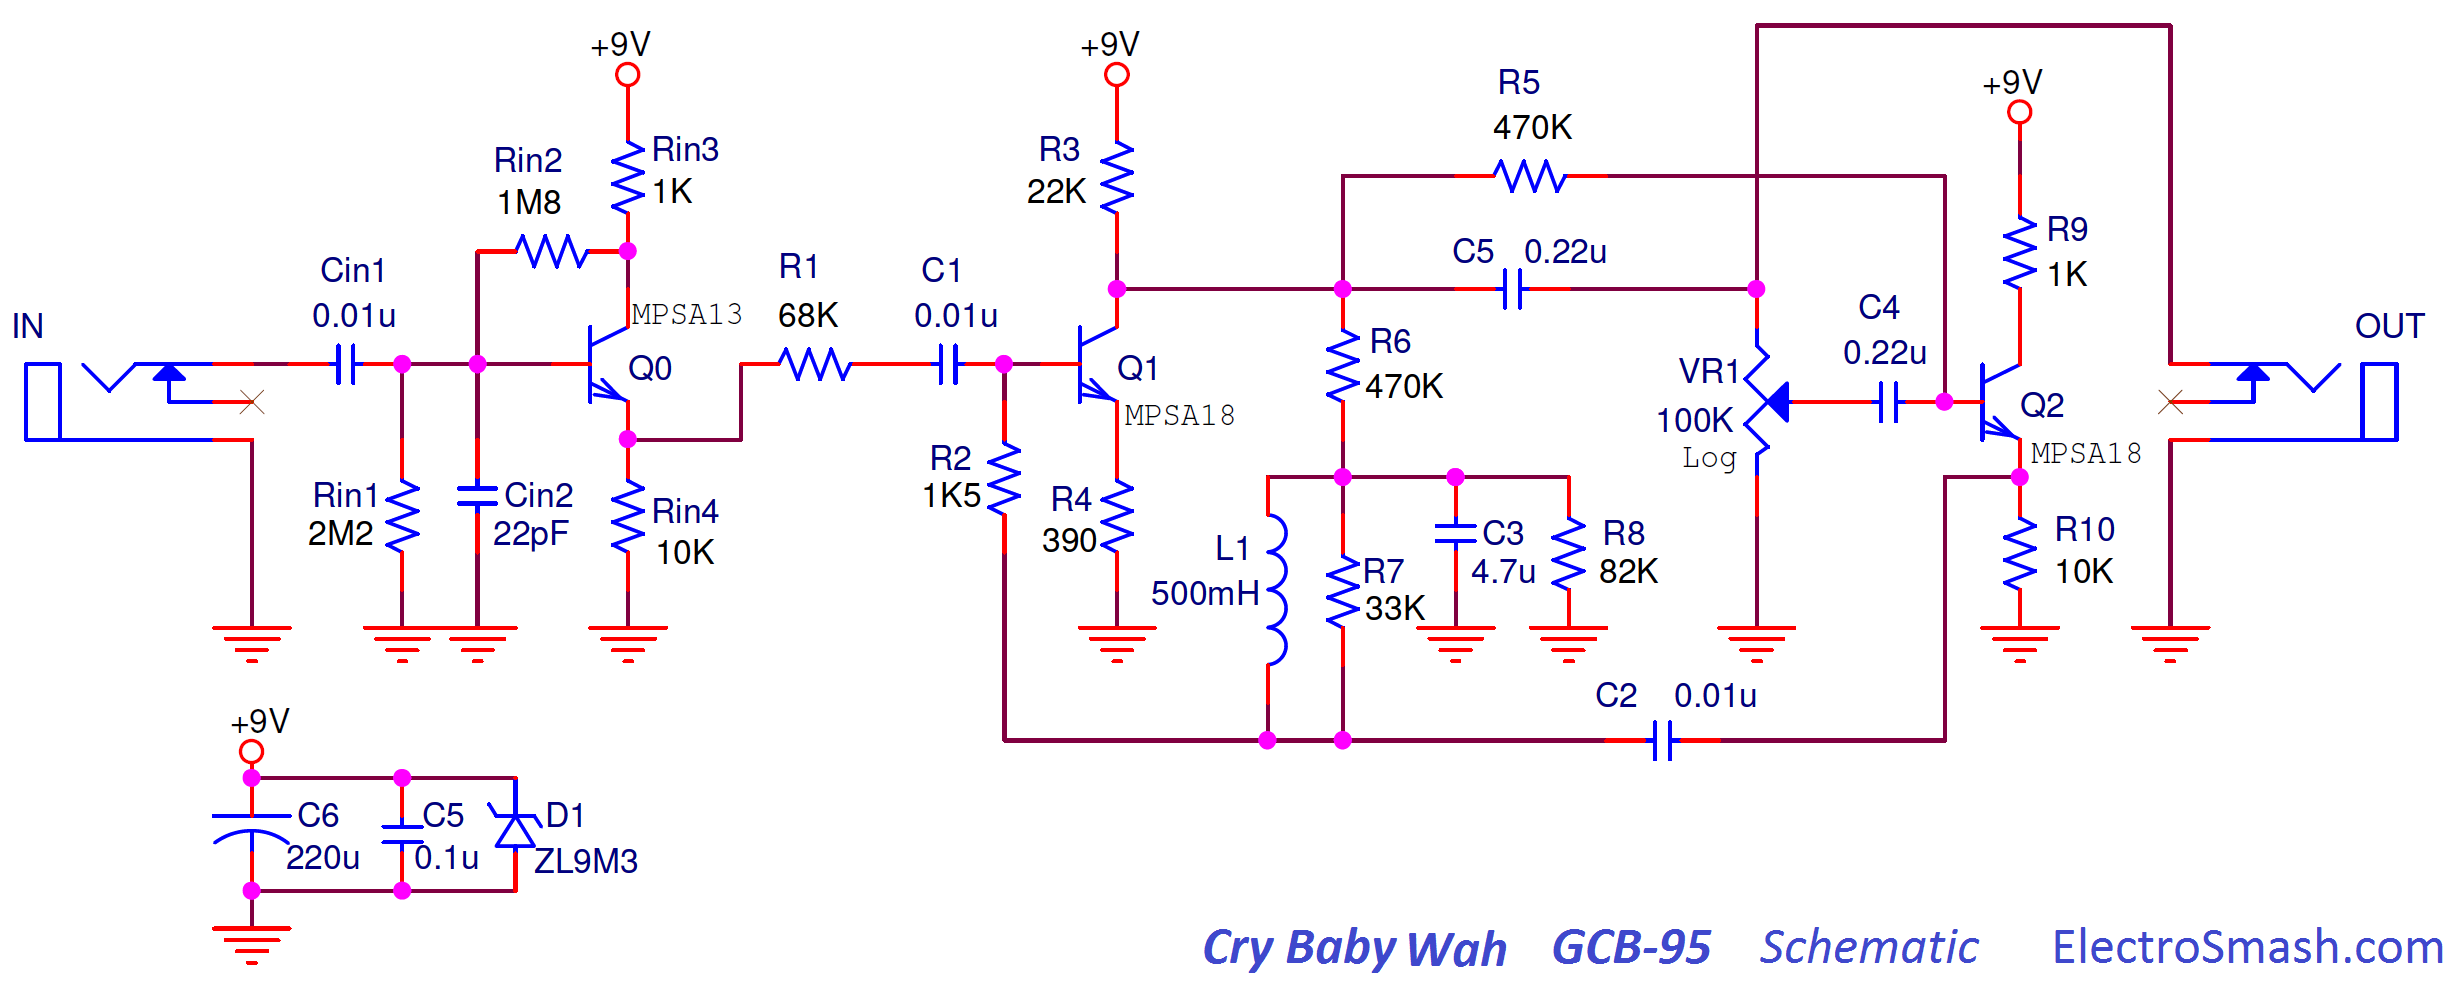 Electrosmash Dunlop Crybaby Gcb 95 Circuit Analysis